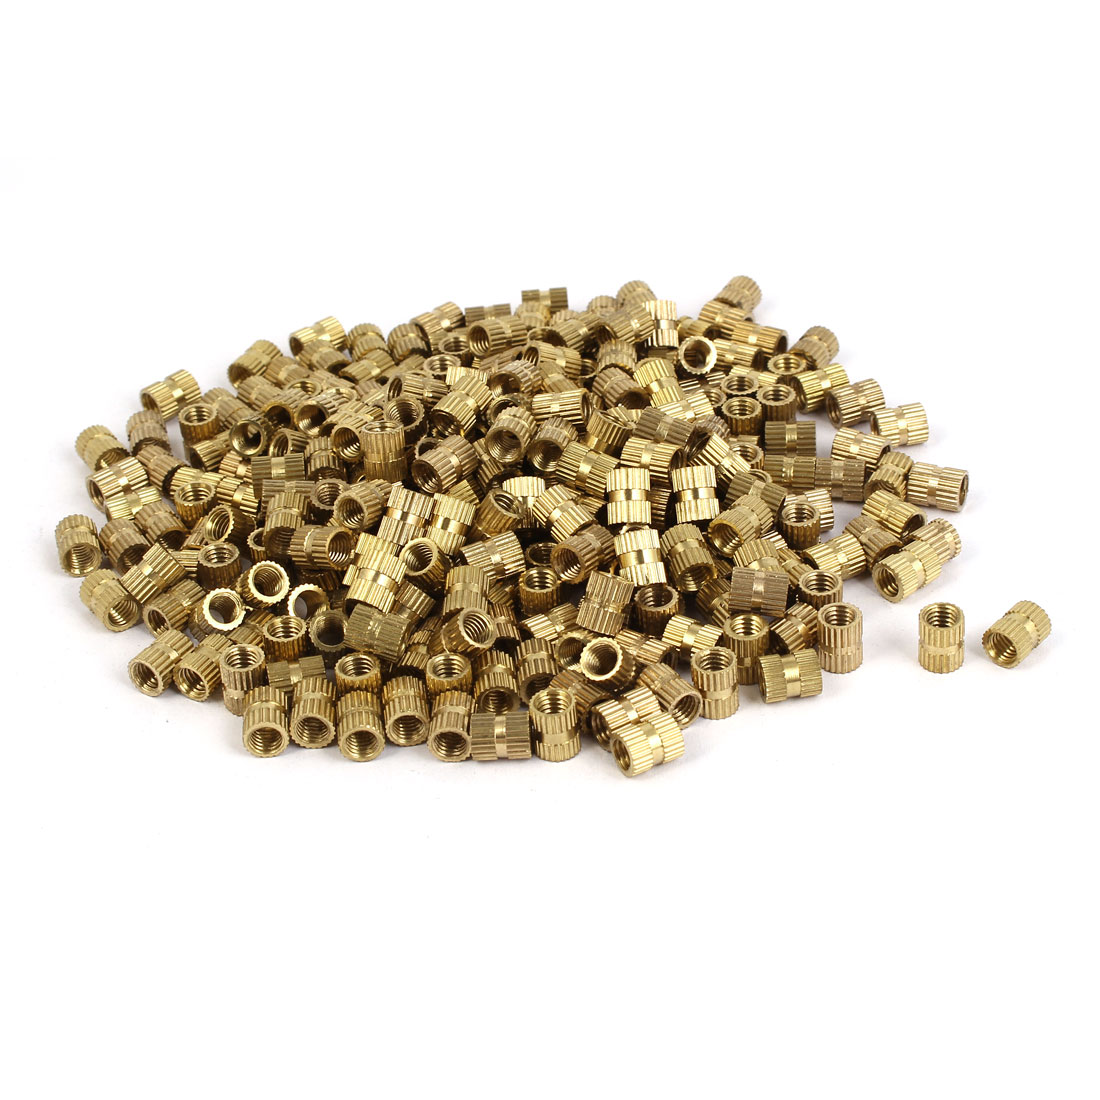 M5 x 8mm Brass Cylinder Knurled Threaded Round Insert Embedded Nuts 500PCS